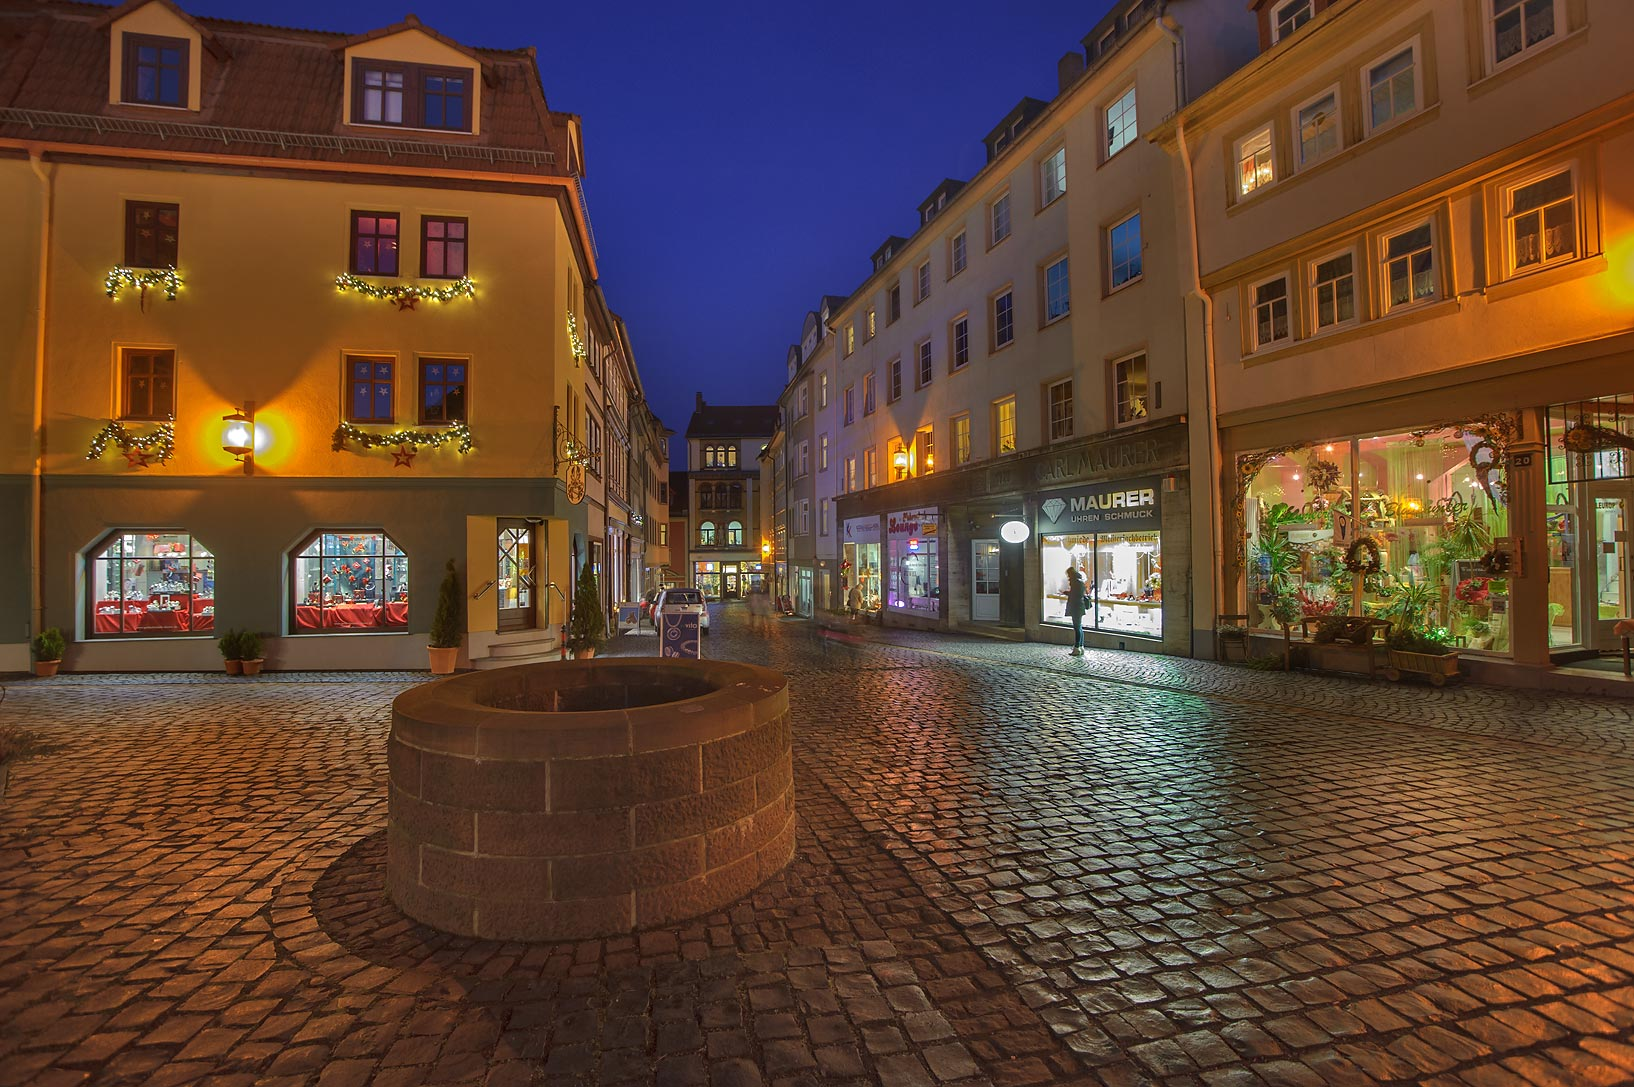 Stone pavement in old city. Gotha, Germany